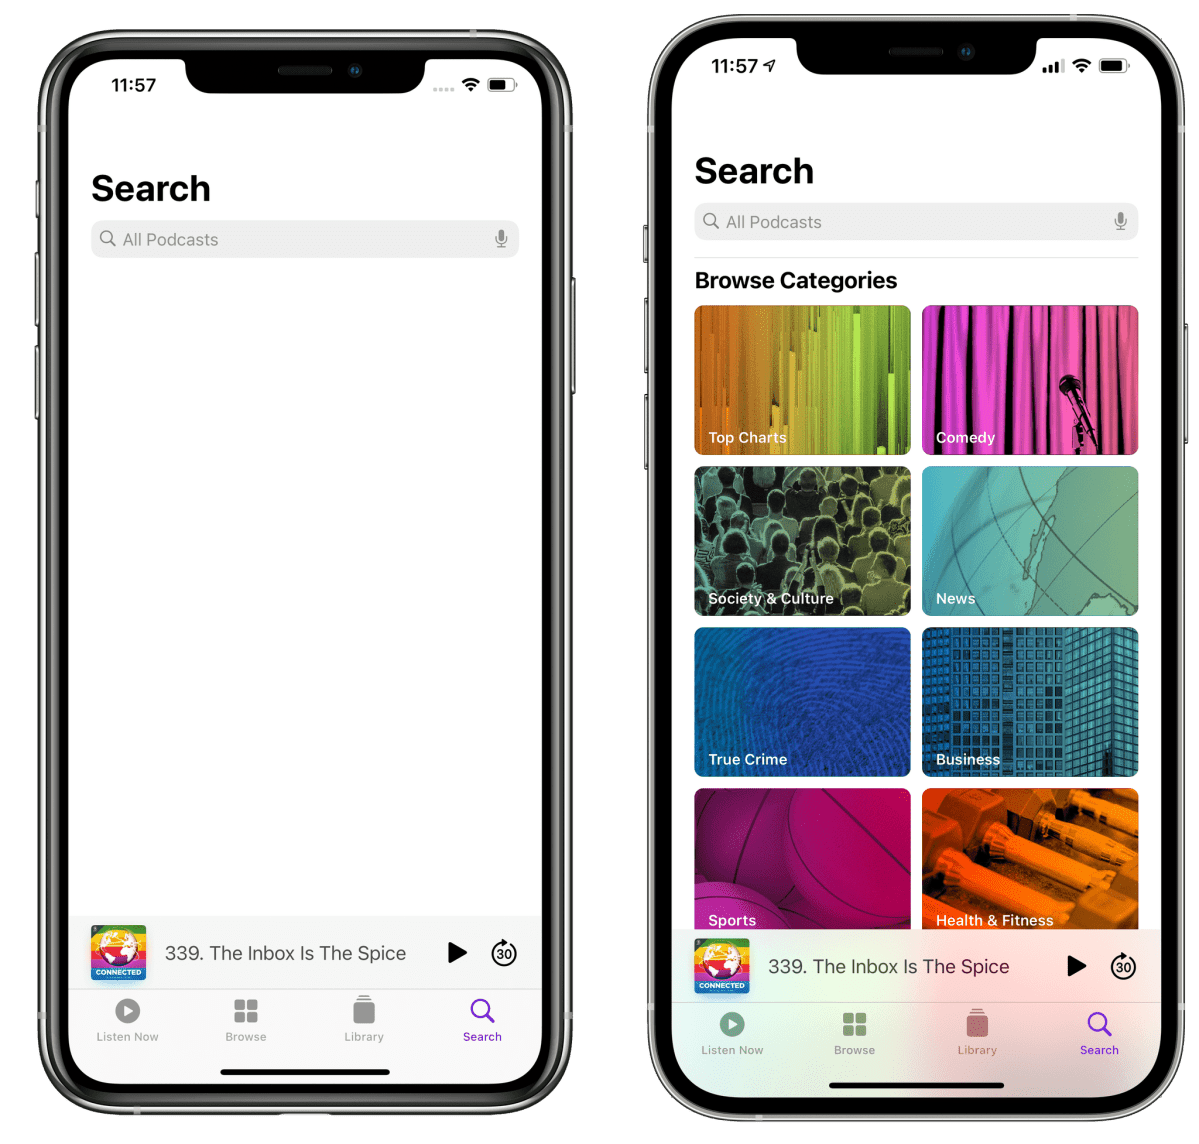 Tell me you're feeling the pressure from Spotify without telling me you're feeling the pressure from Spotify. (Pictured left: iOS 14.4's old search page in Podcasts.)